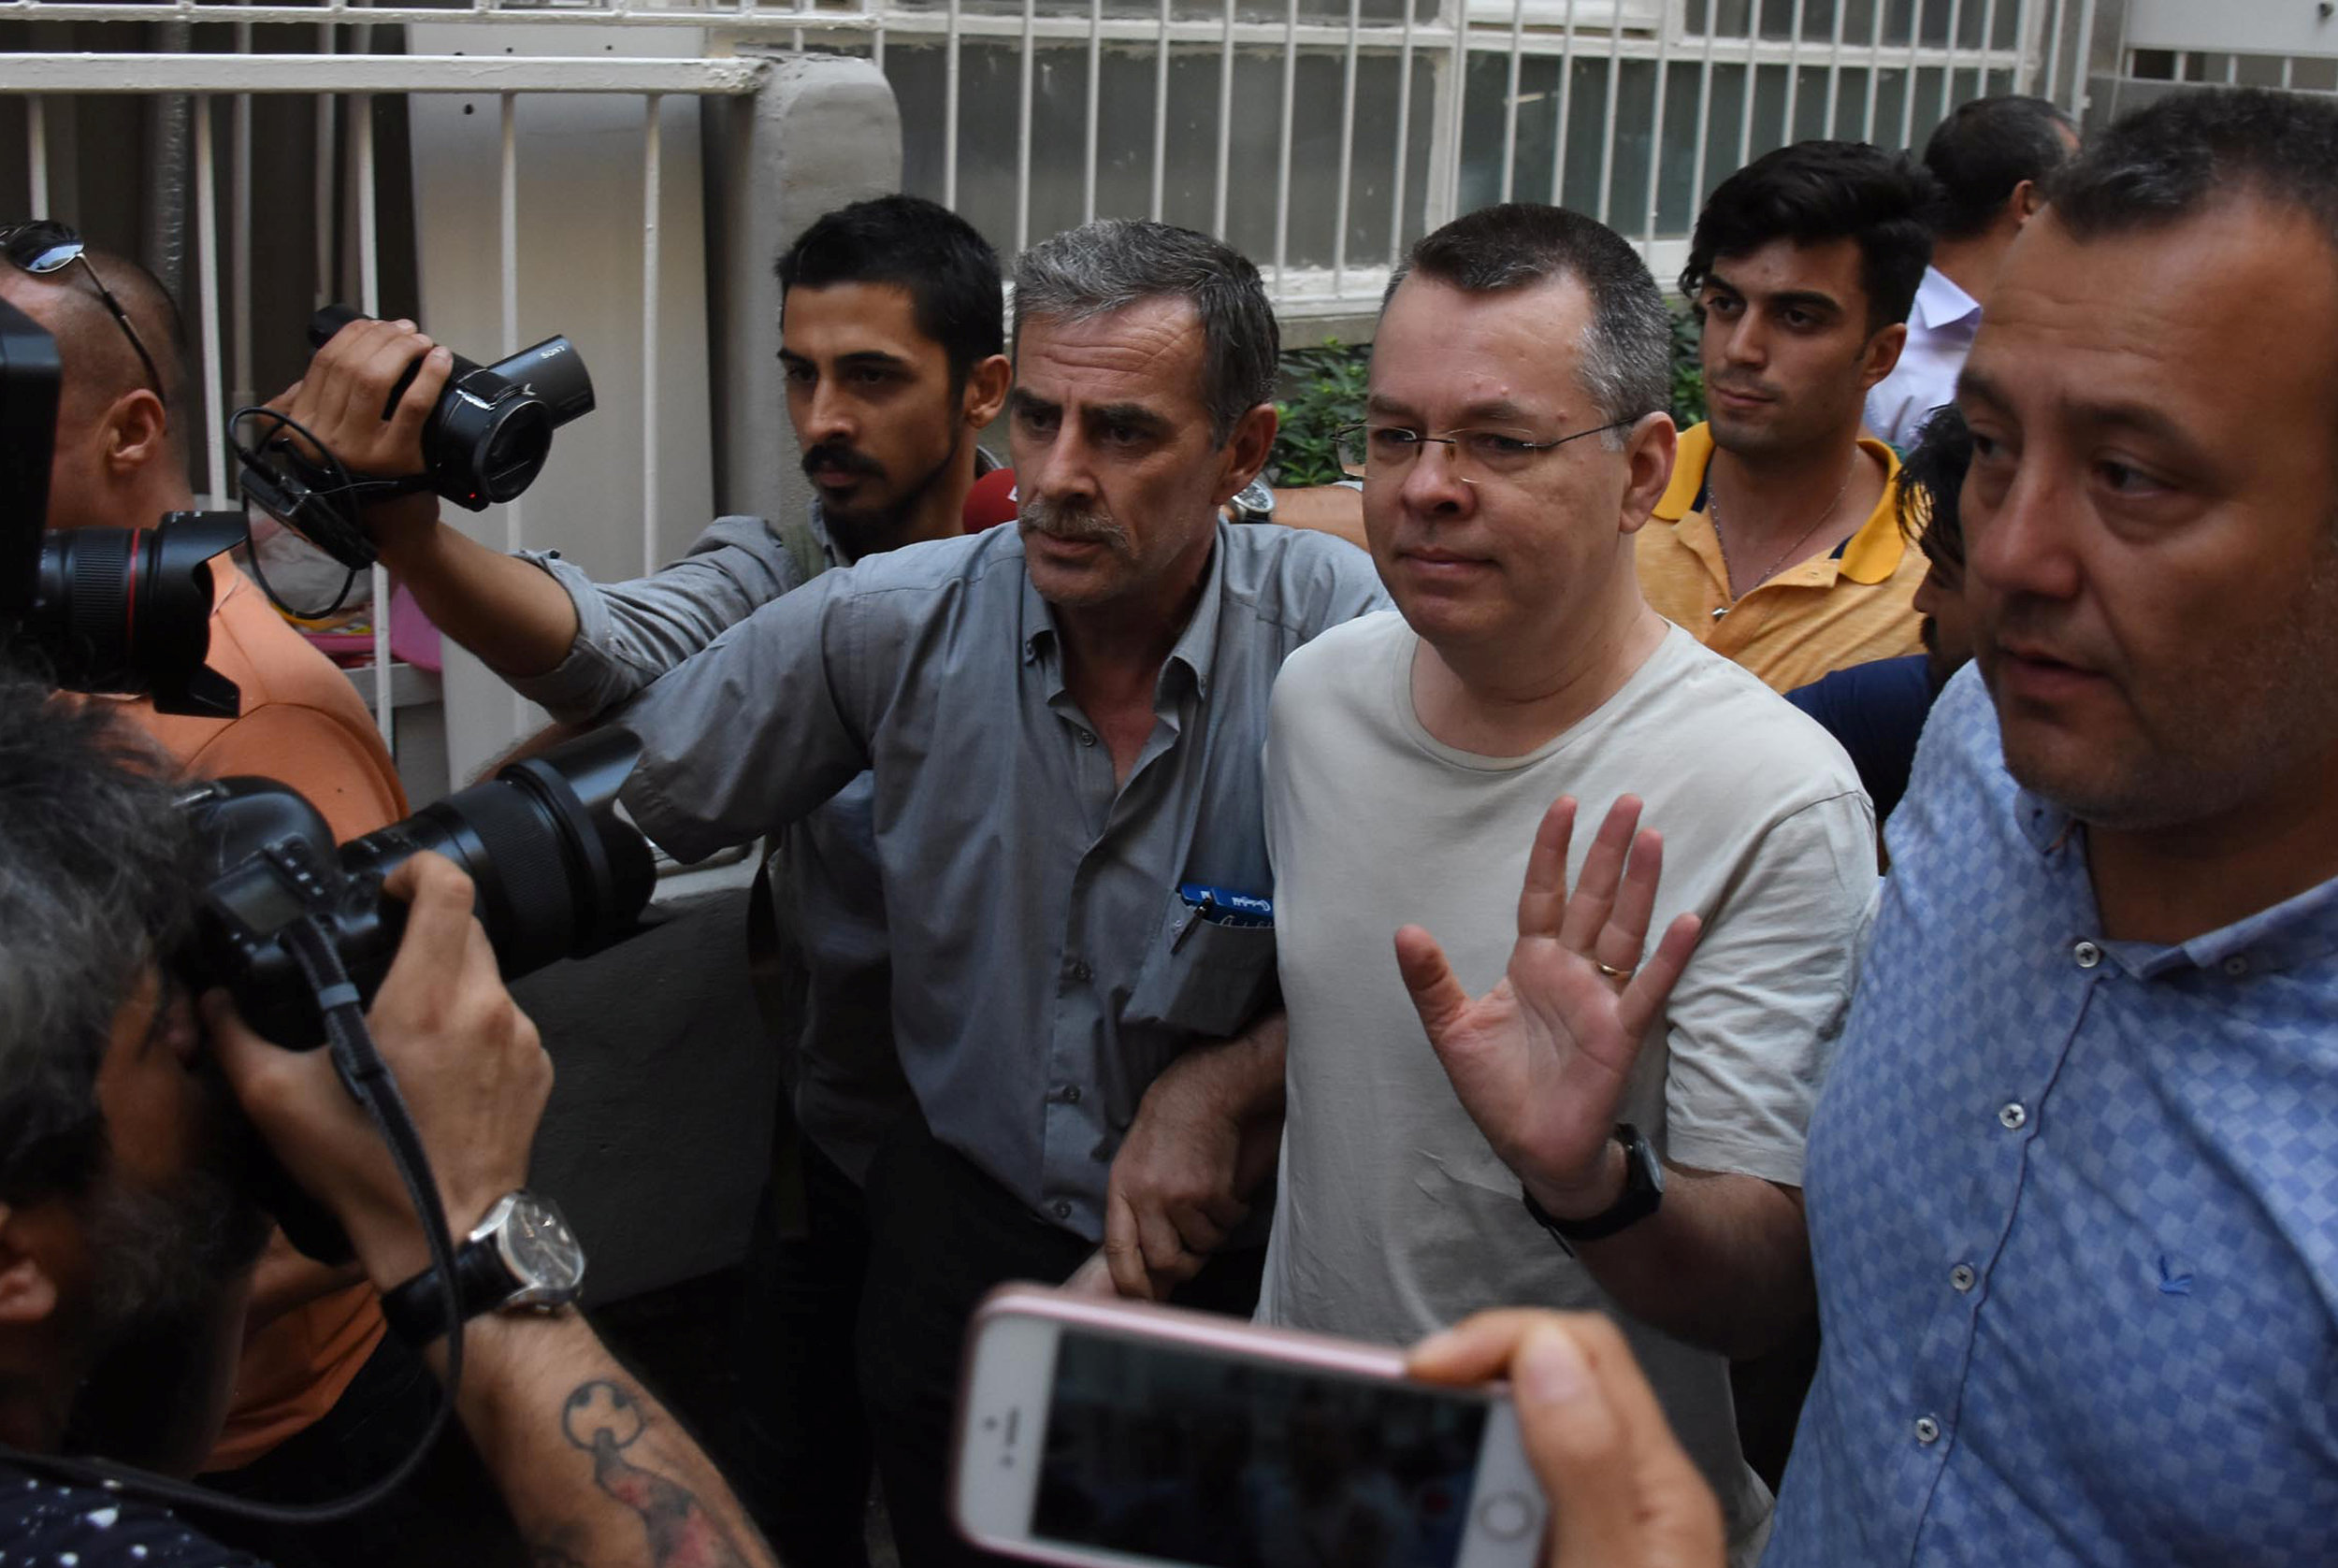 FILE PHOTO - U.S. pastor Andrew Brunson reacts as he arrives at his home after being released from the prison in Izmir, Turkey July 25, 2018. Demiroren News Agency, DHA via REUTERS